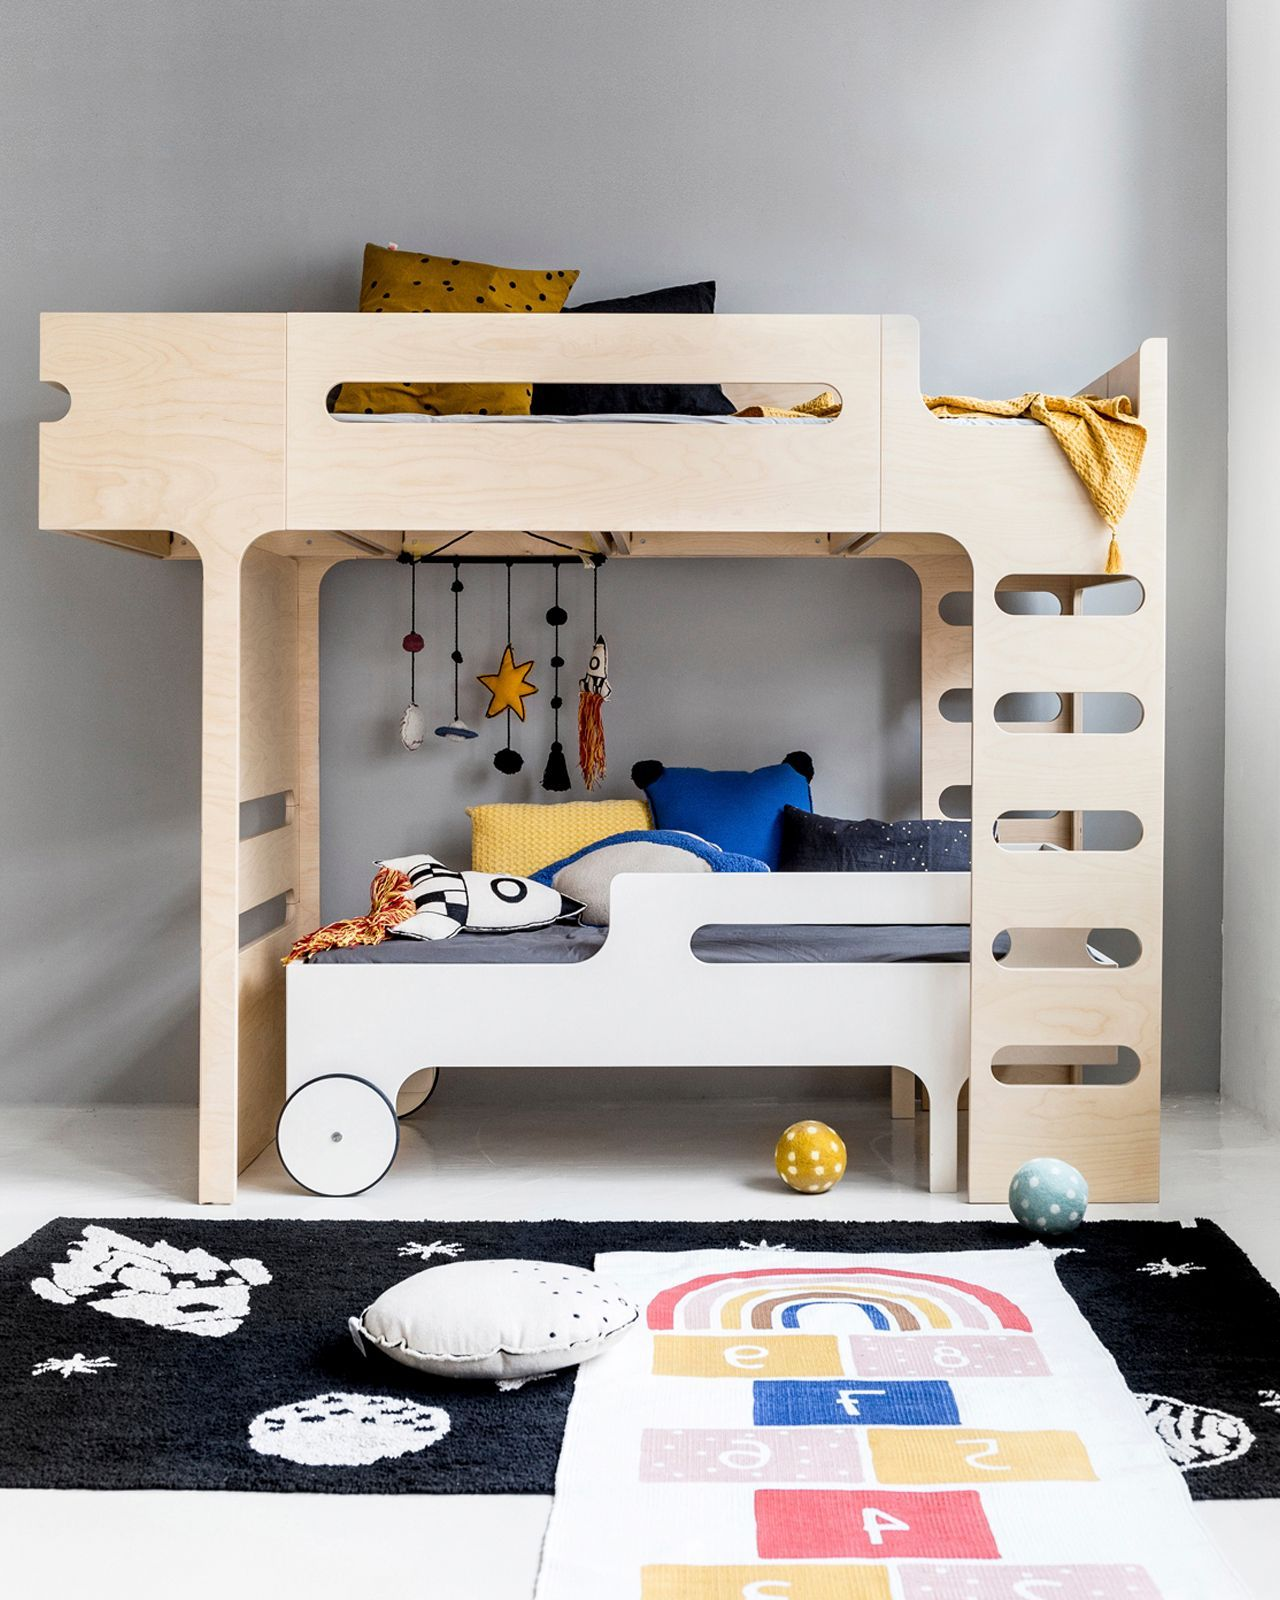 14 Tips For Choosing Furniture For Children S Rooms Plus Photos Decor Around The World Kids Bedroom Sets Childrens Bedroom Furniture Bunk Bed Designs Choosing kids bedroom furniture